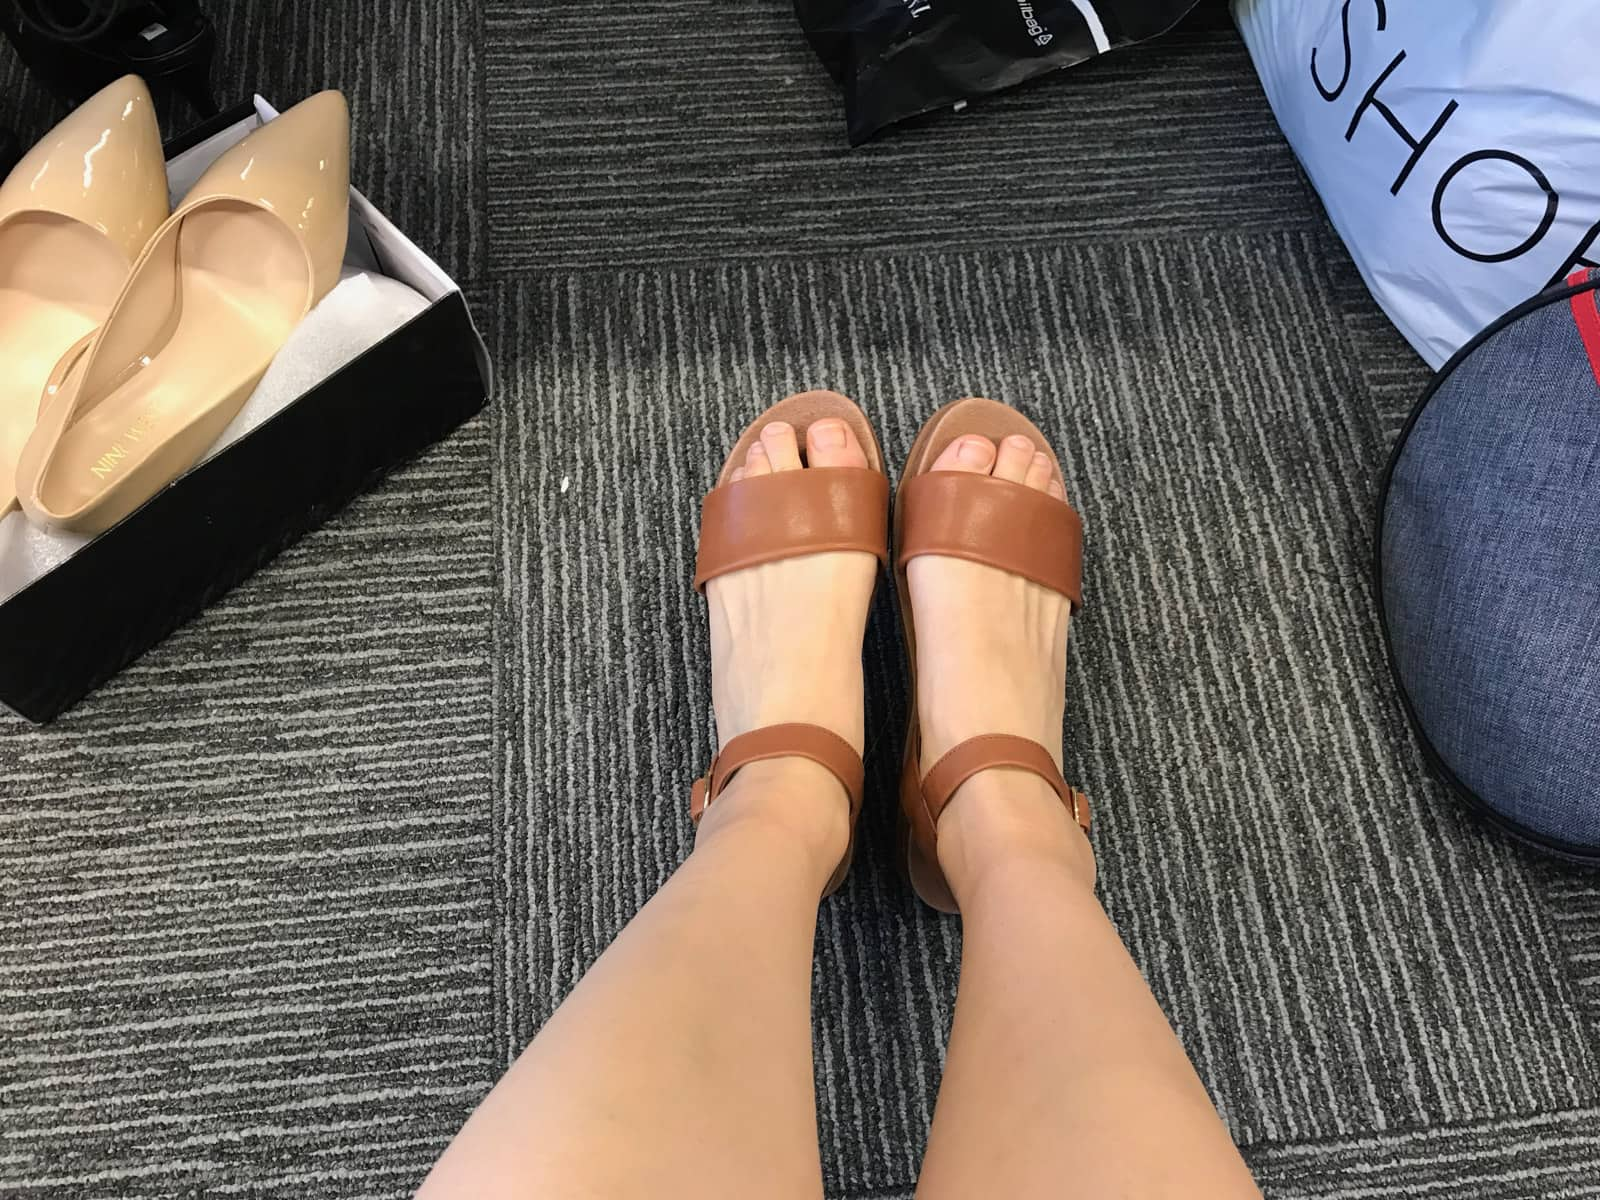 A point-of-view photo of a woman's feet with brown sandals on. In the background is a pair of nude-coloured heels